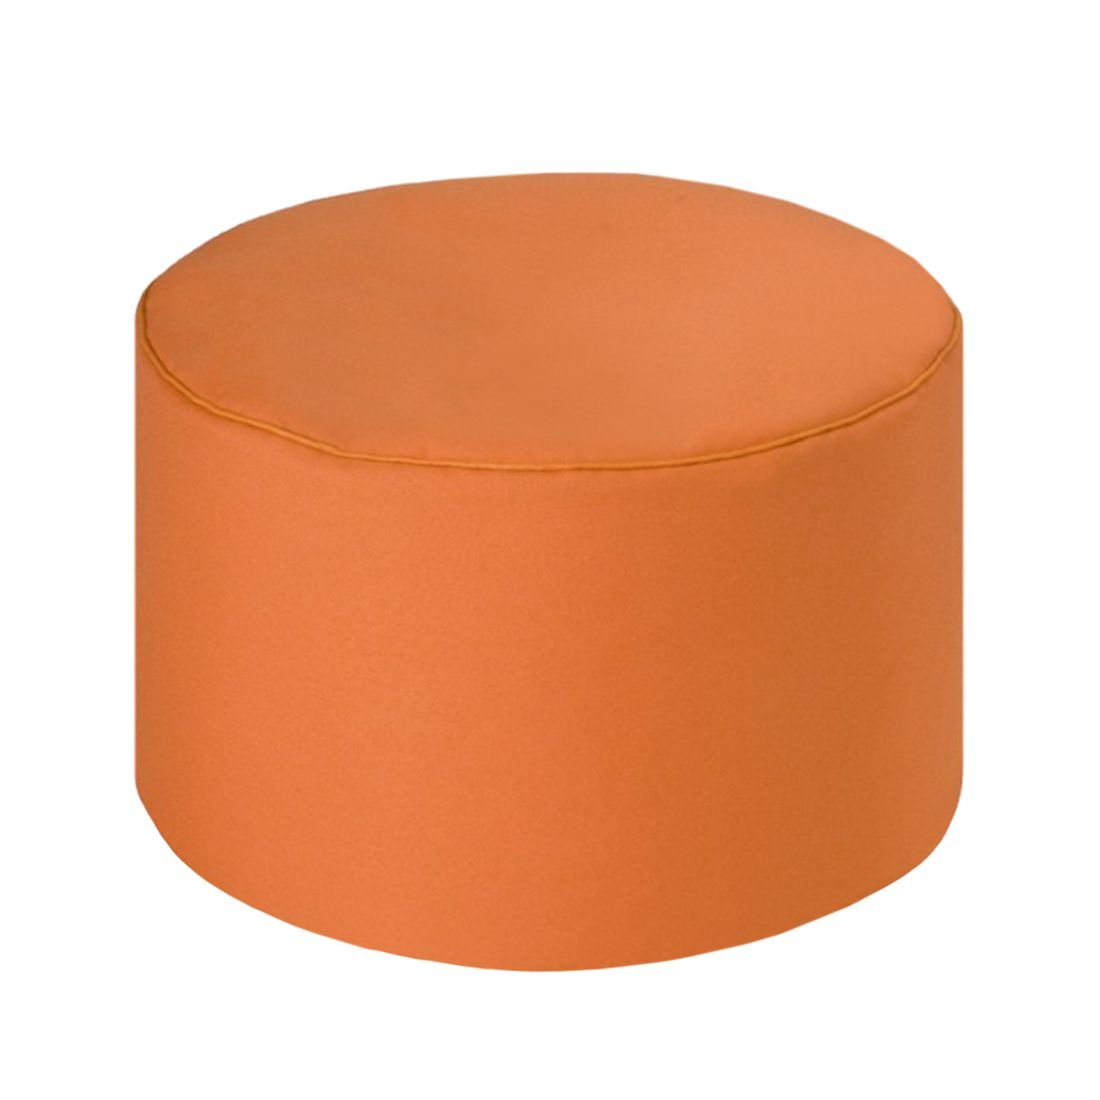 goedkoop Poef Scuba dot com oranje SITTING POINT